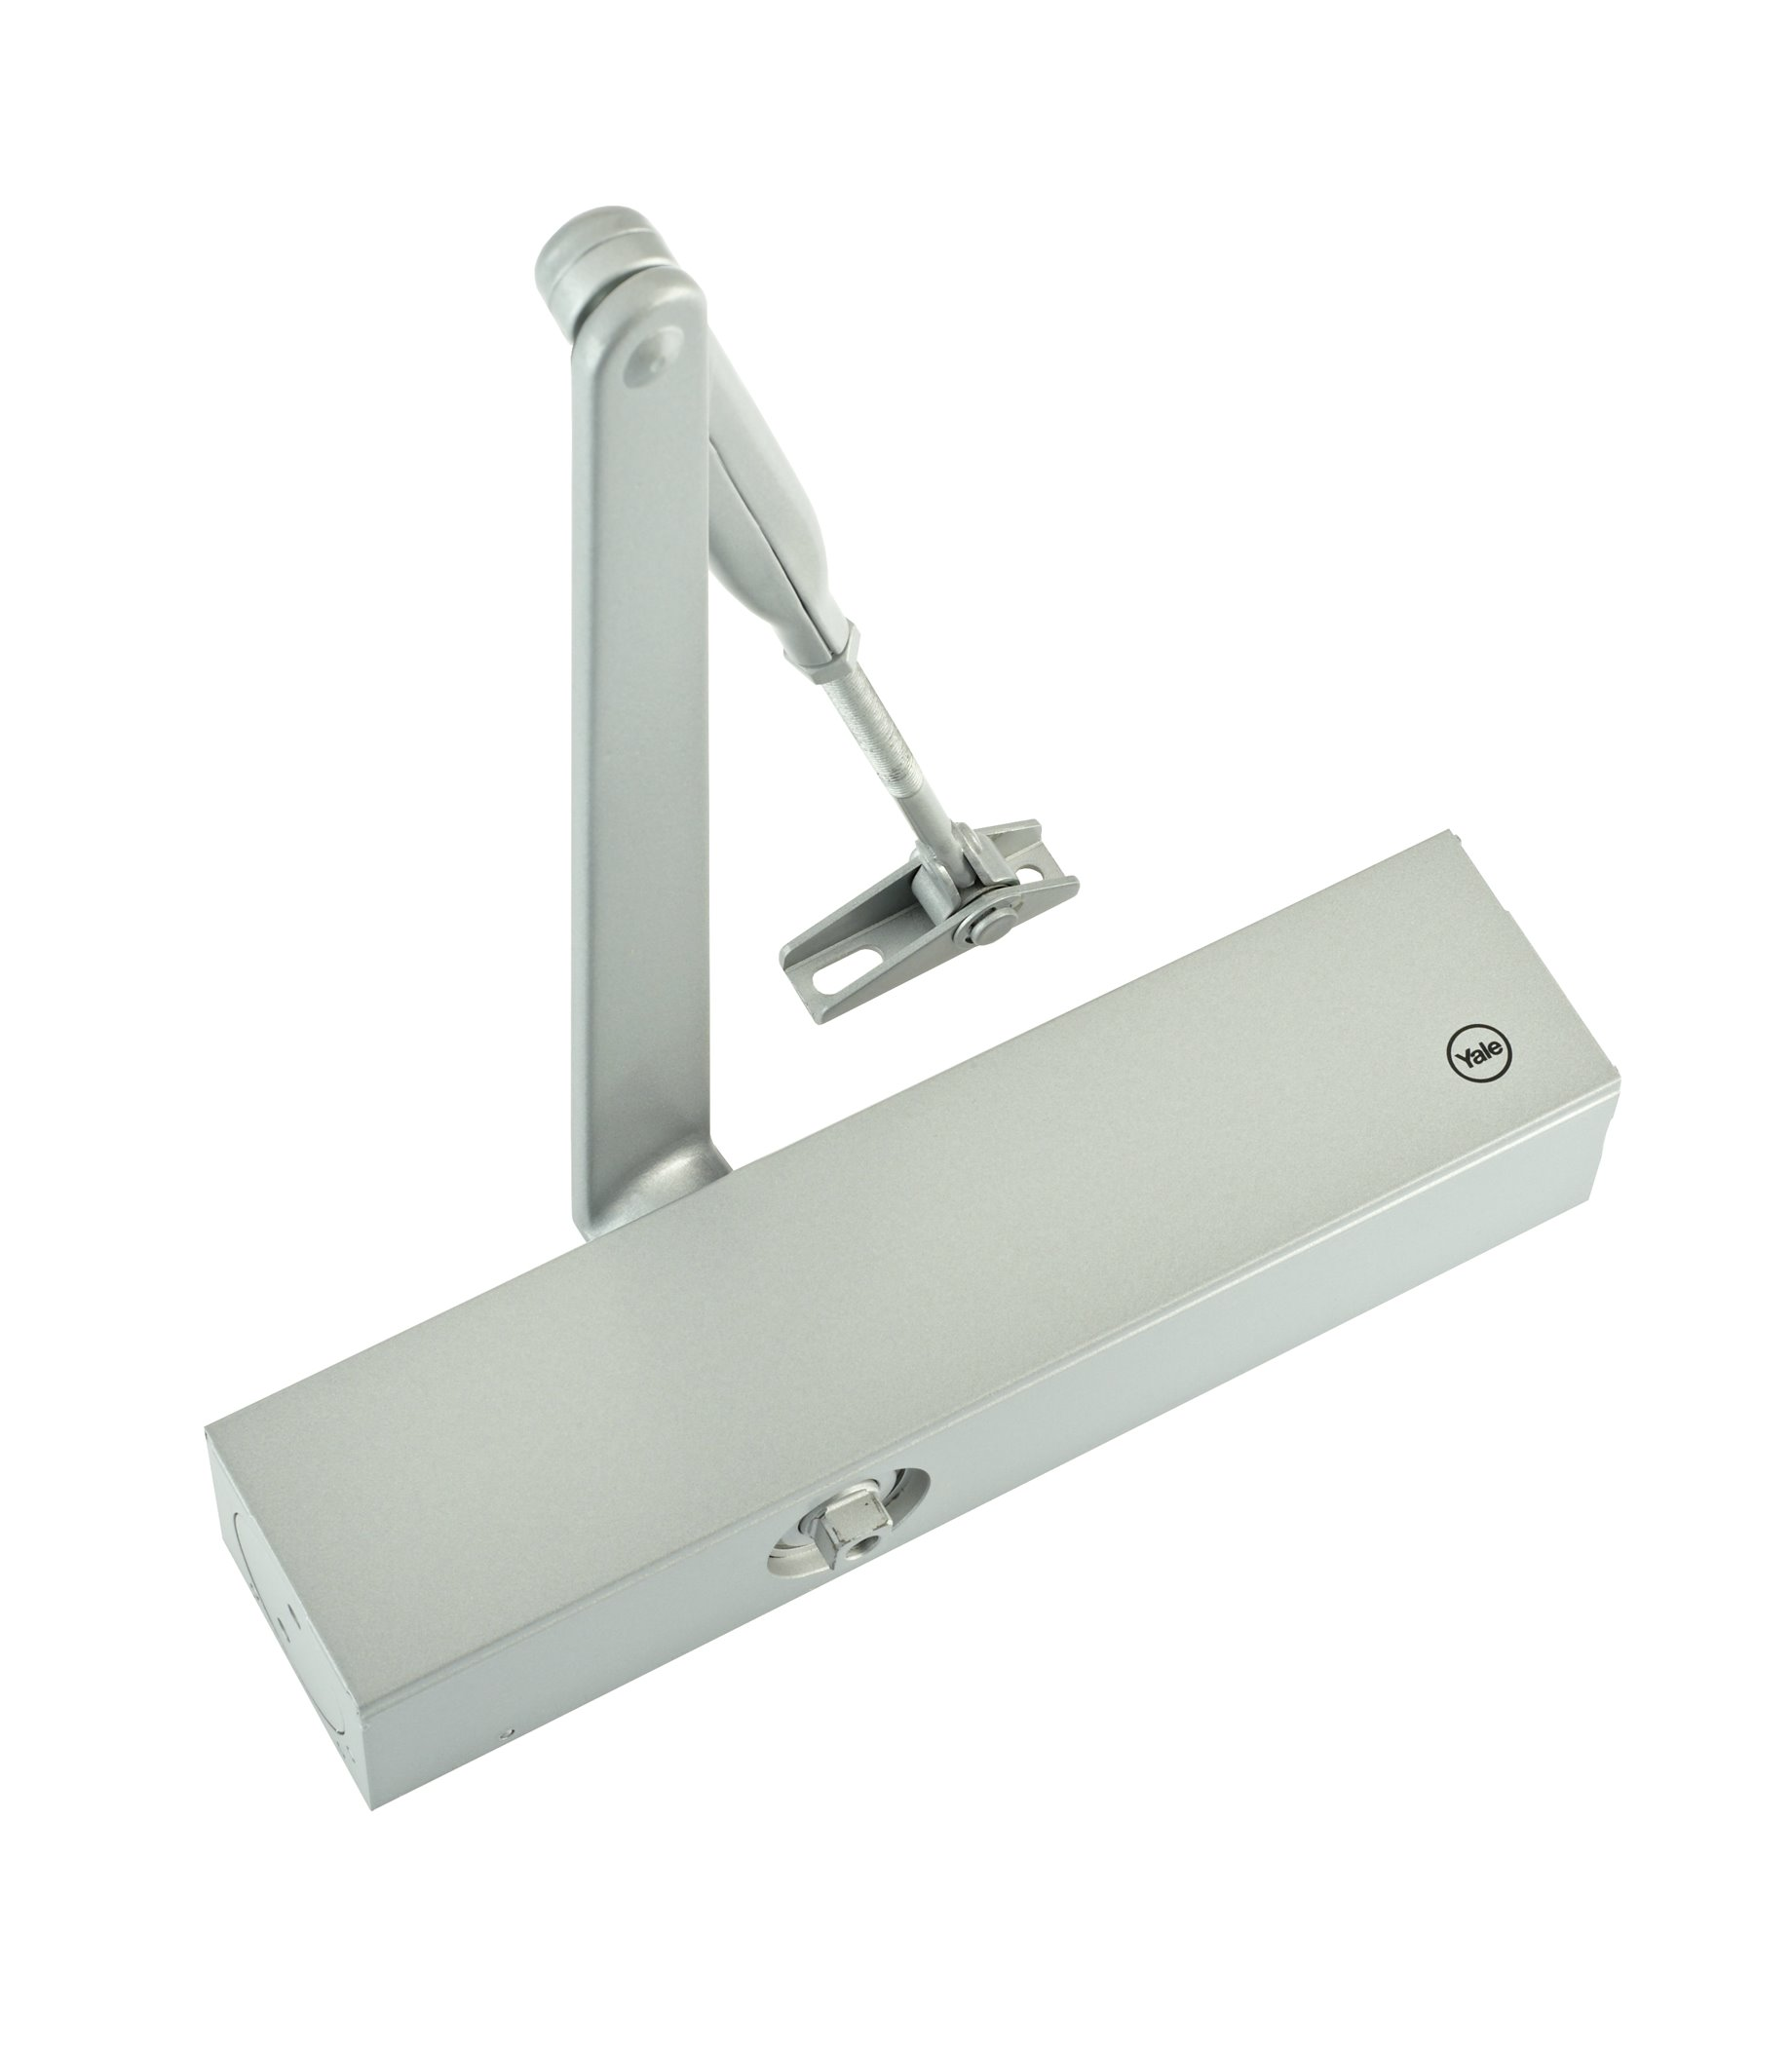 Yale 7000 CE Door Closer - Size 2-6